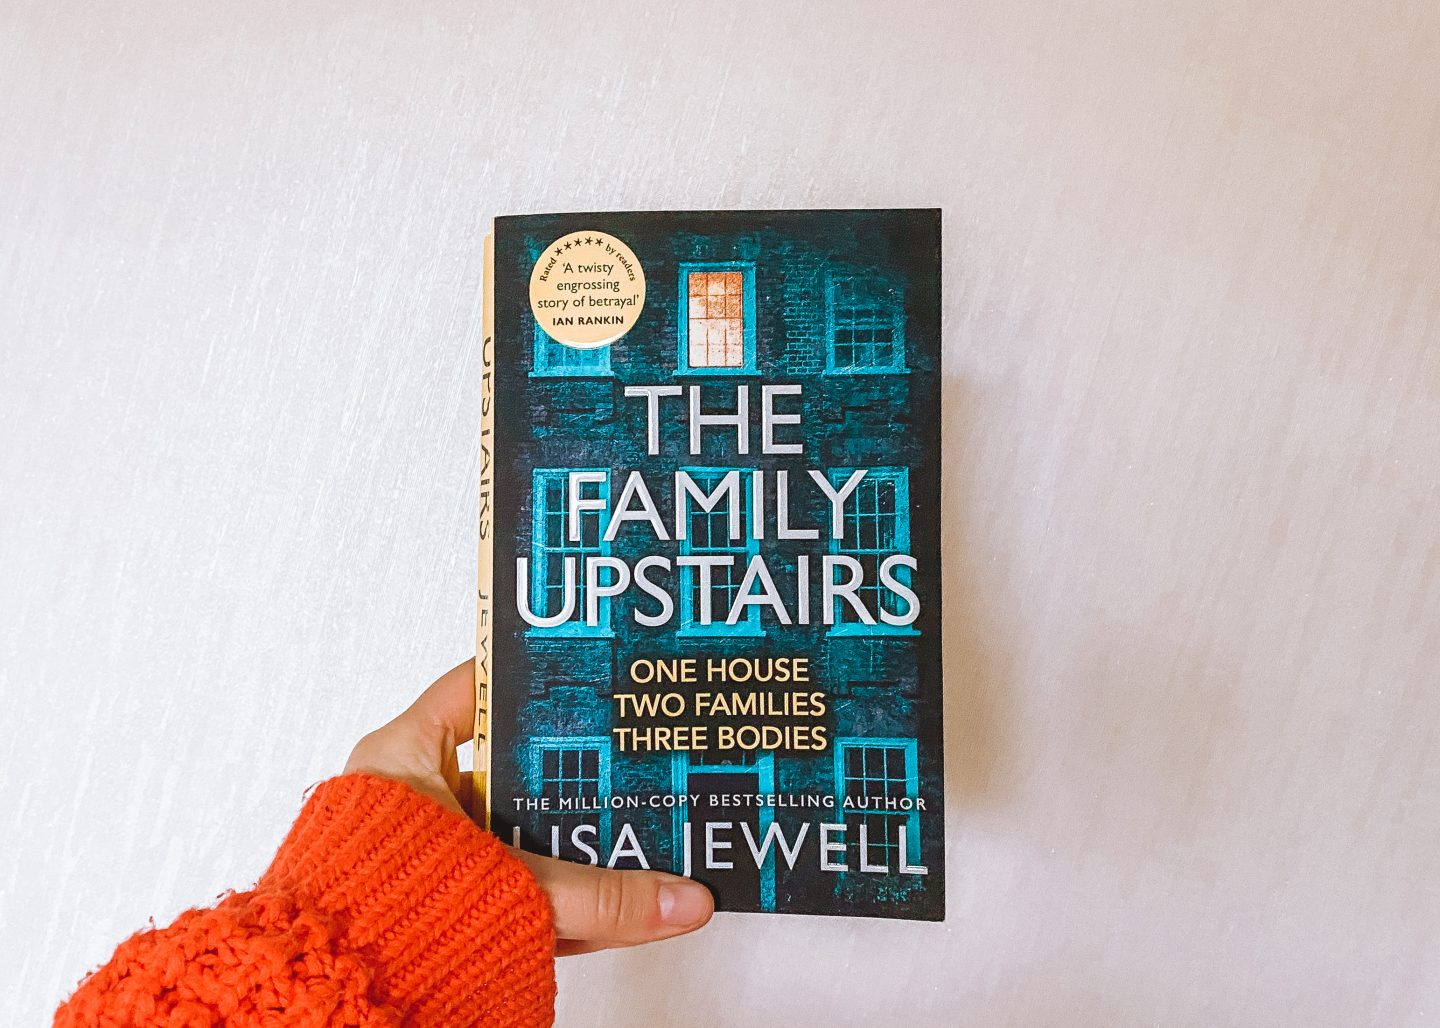 The family upstairs book cover